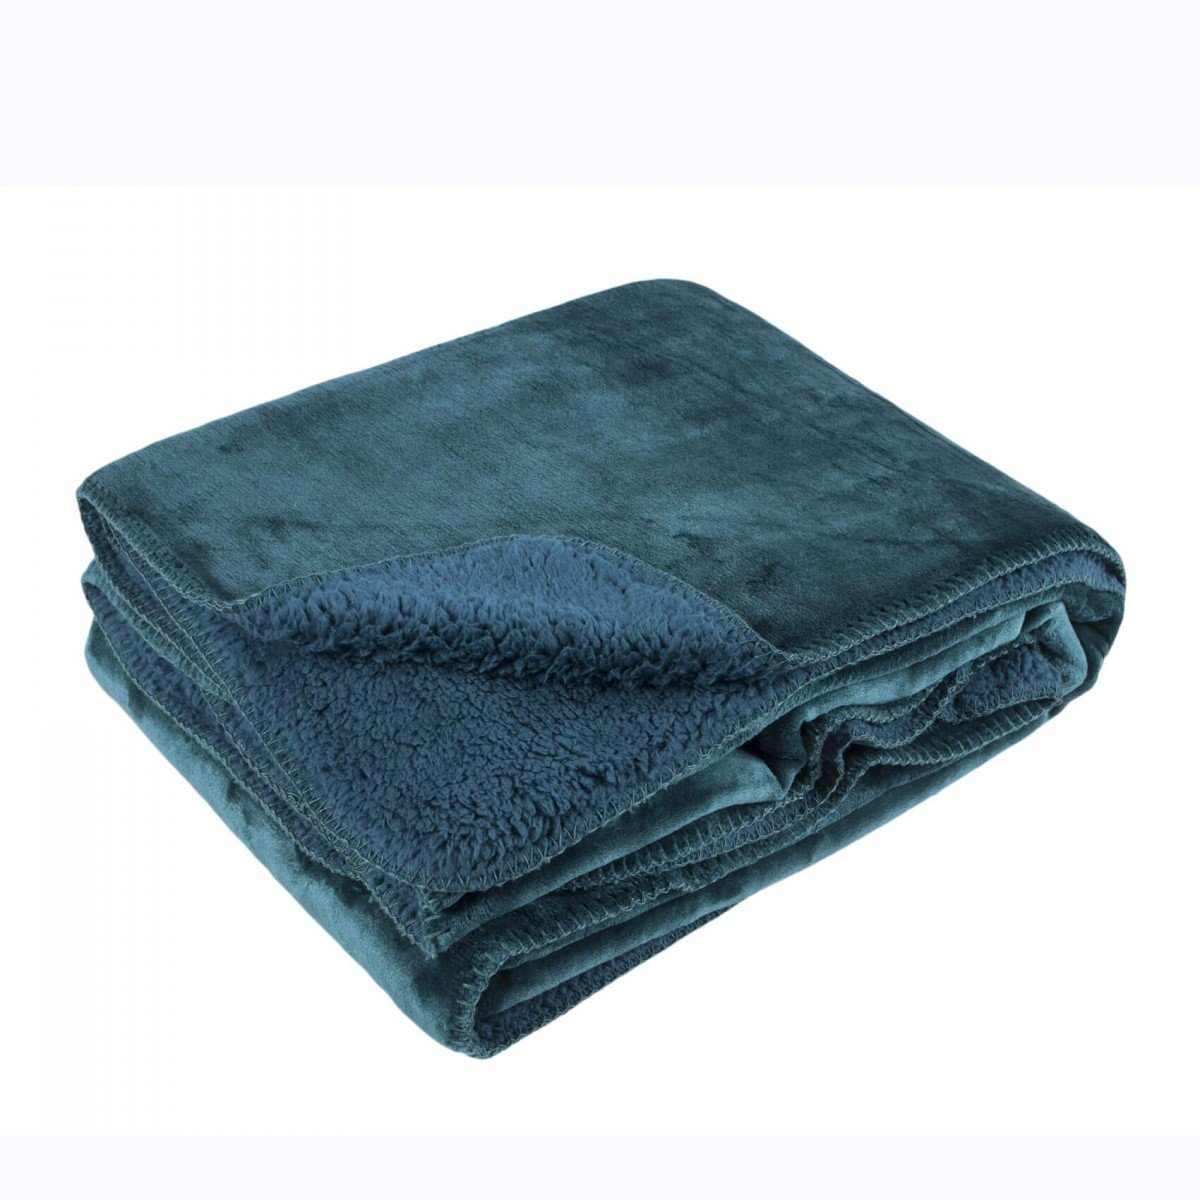 MALINI COSY BLANKET THROW IN PETROL GREEN 150X200CMS: Amazon.co.uk ...